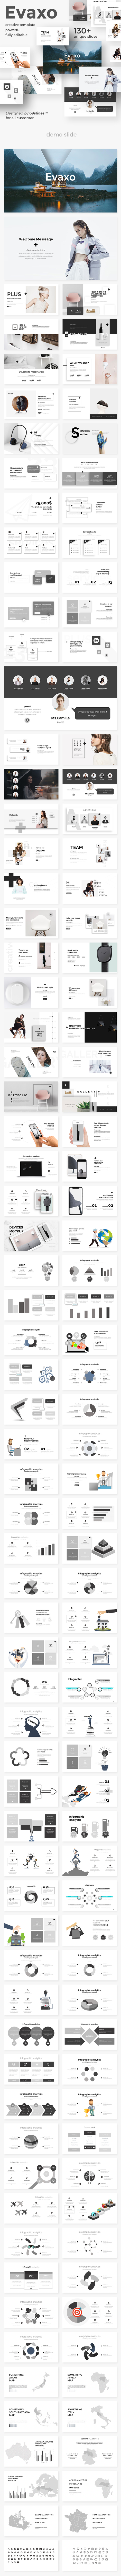 Evaxo Creative Powerpoint Template - Creative PowerPoint Templates